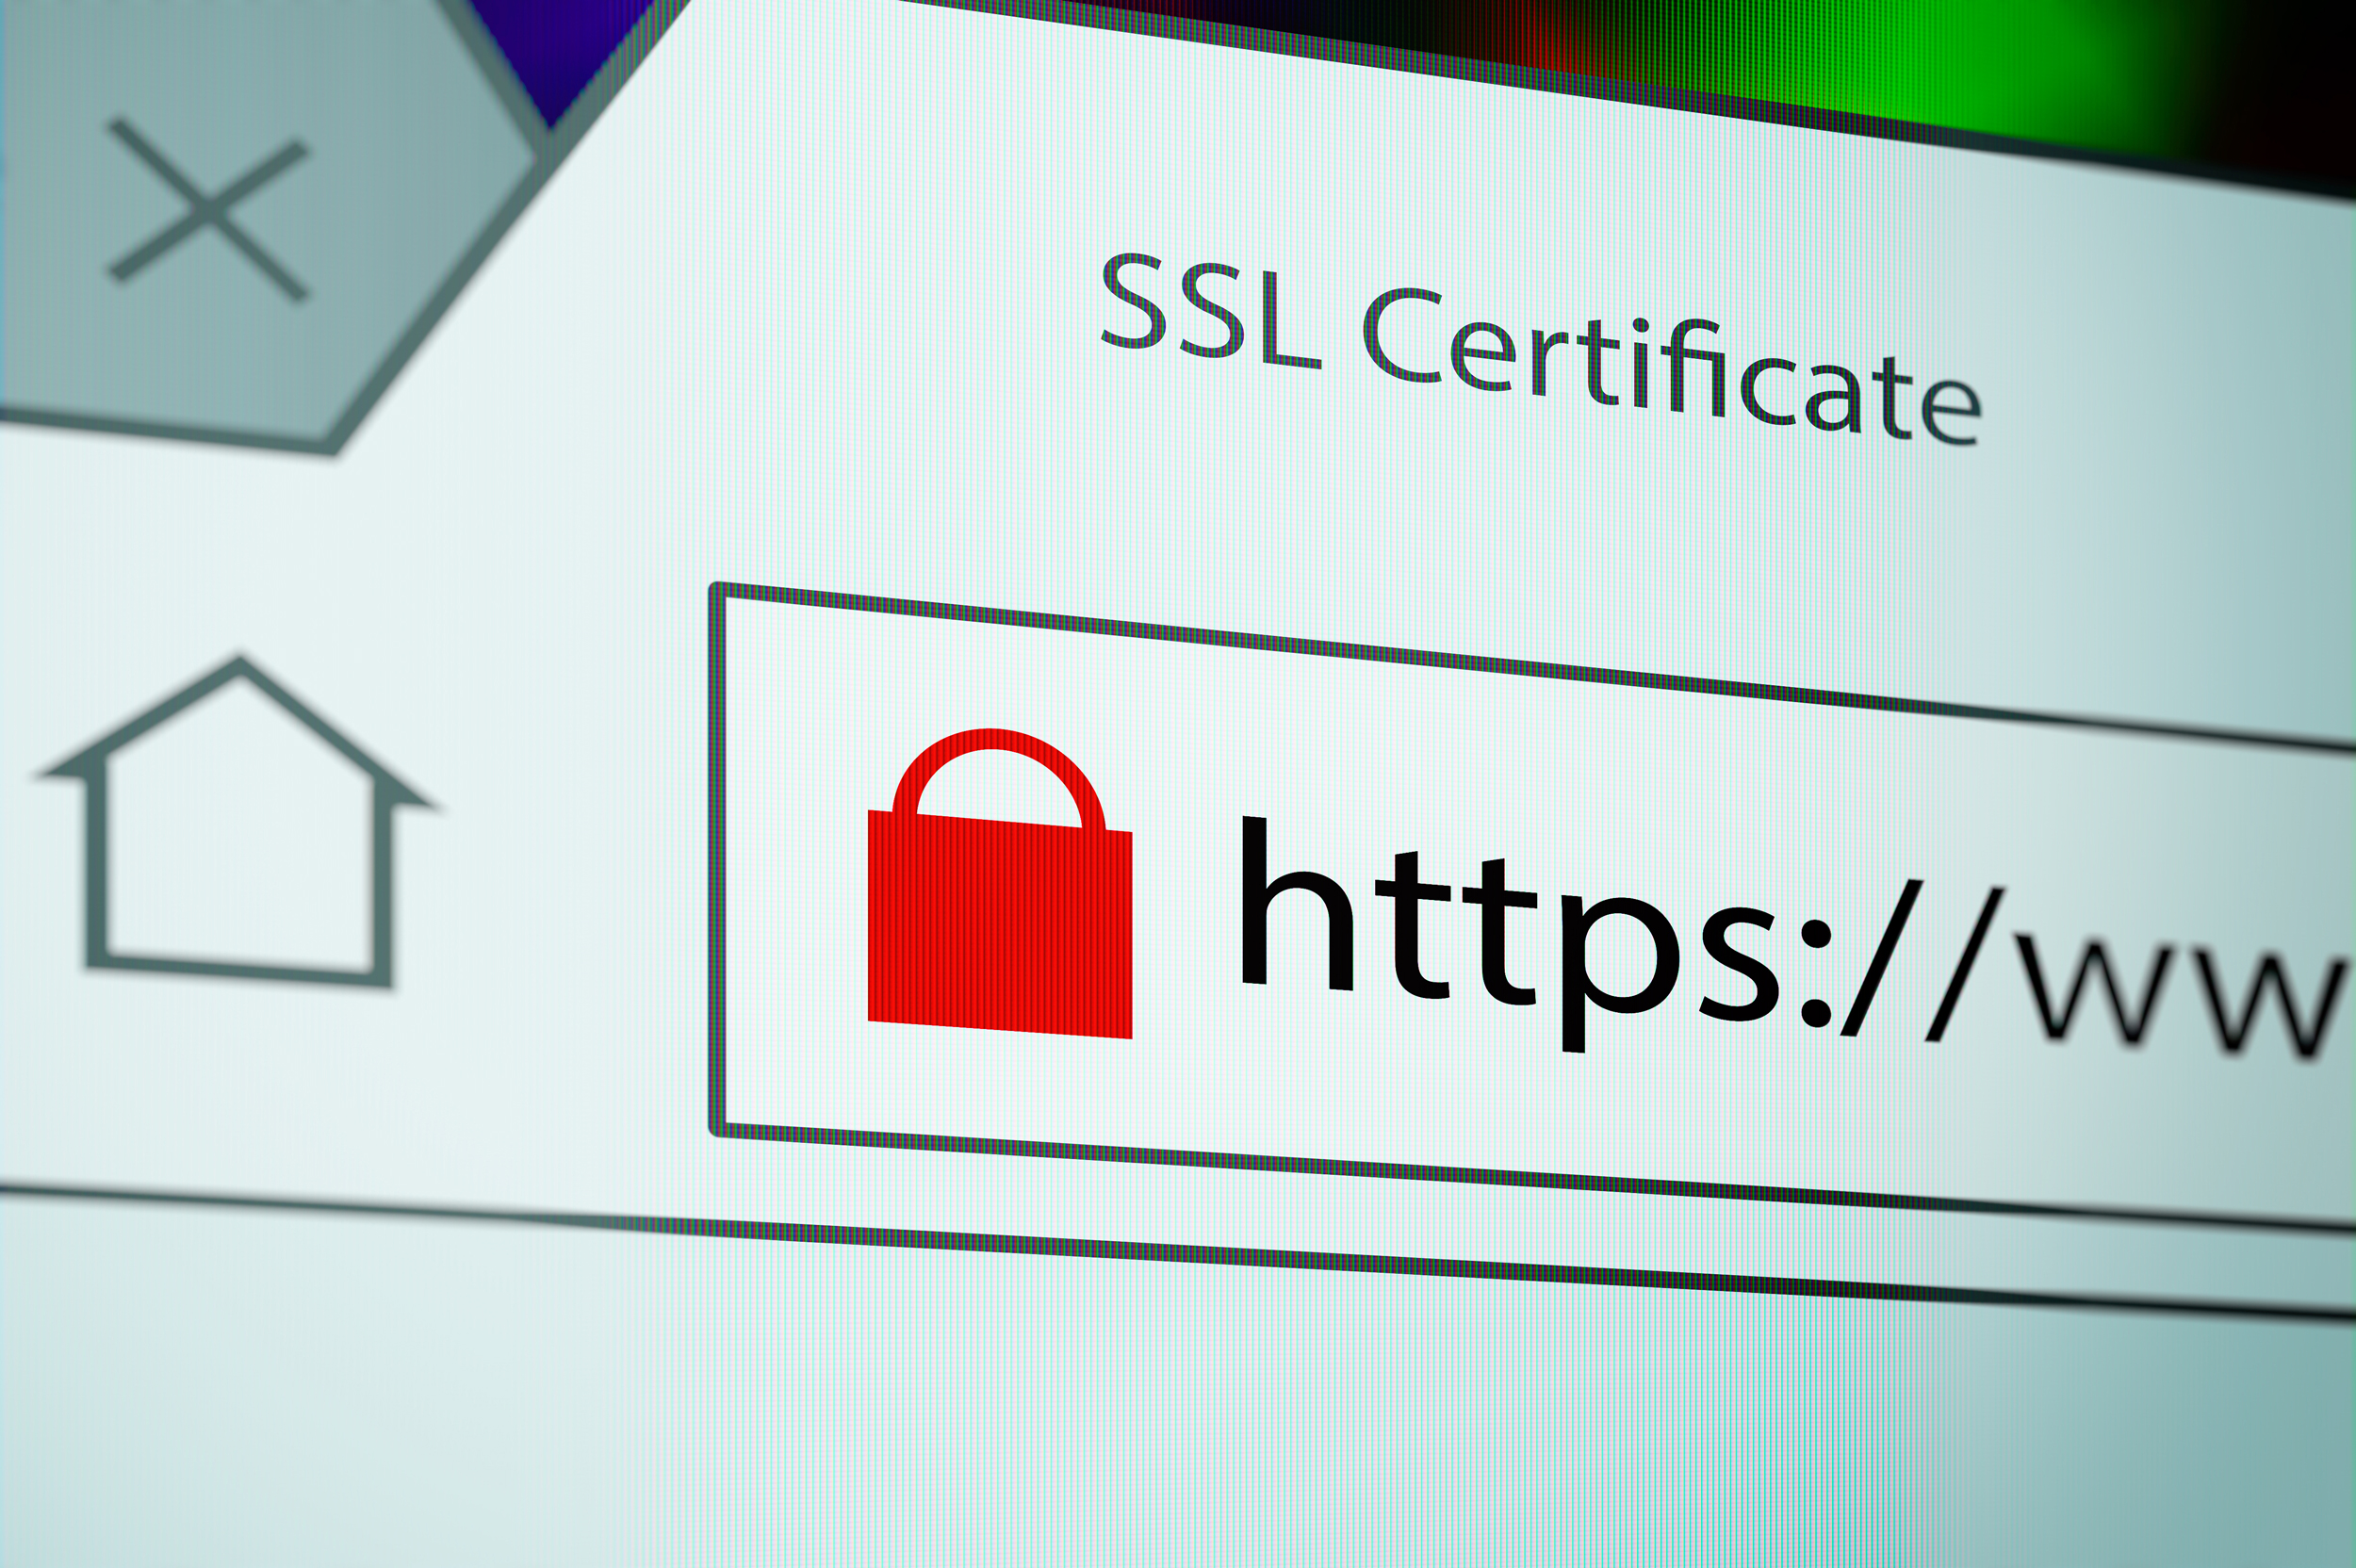 General Tips for Online Security and Privacy | B&H Explora